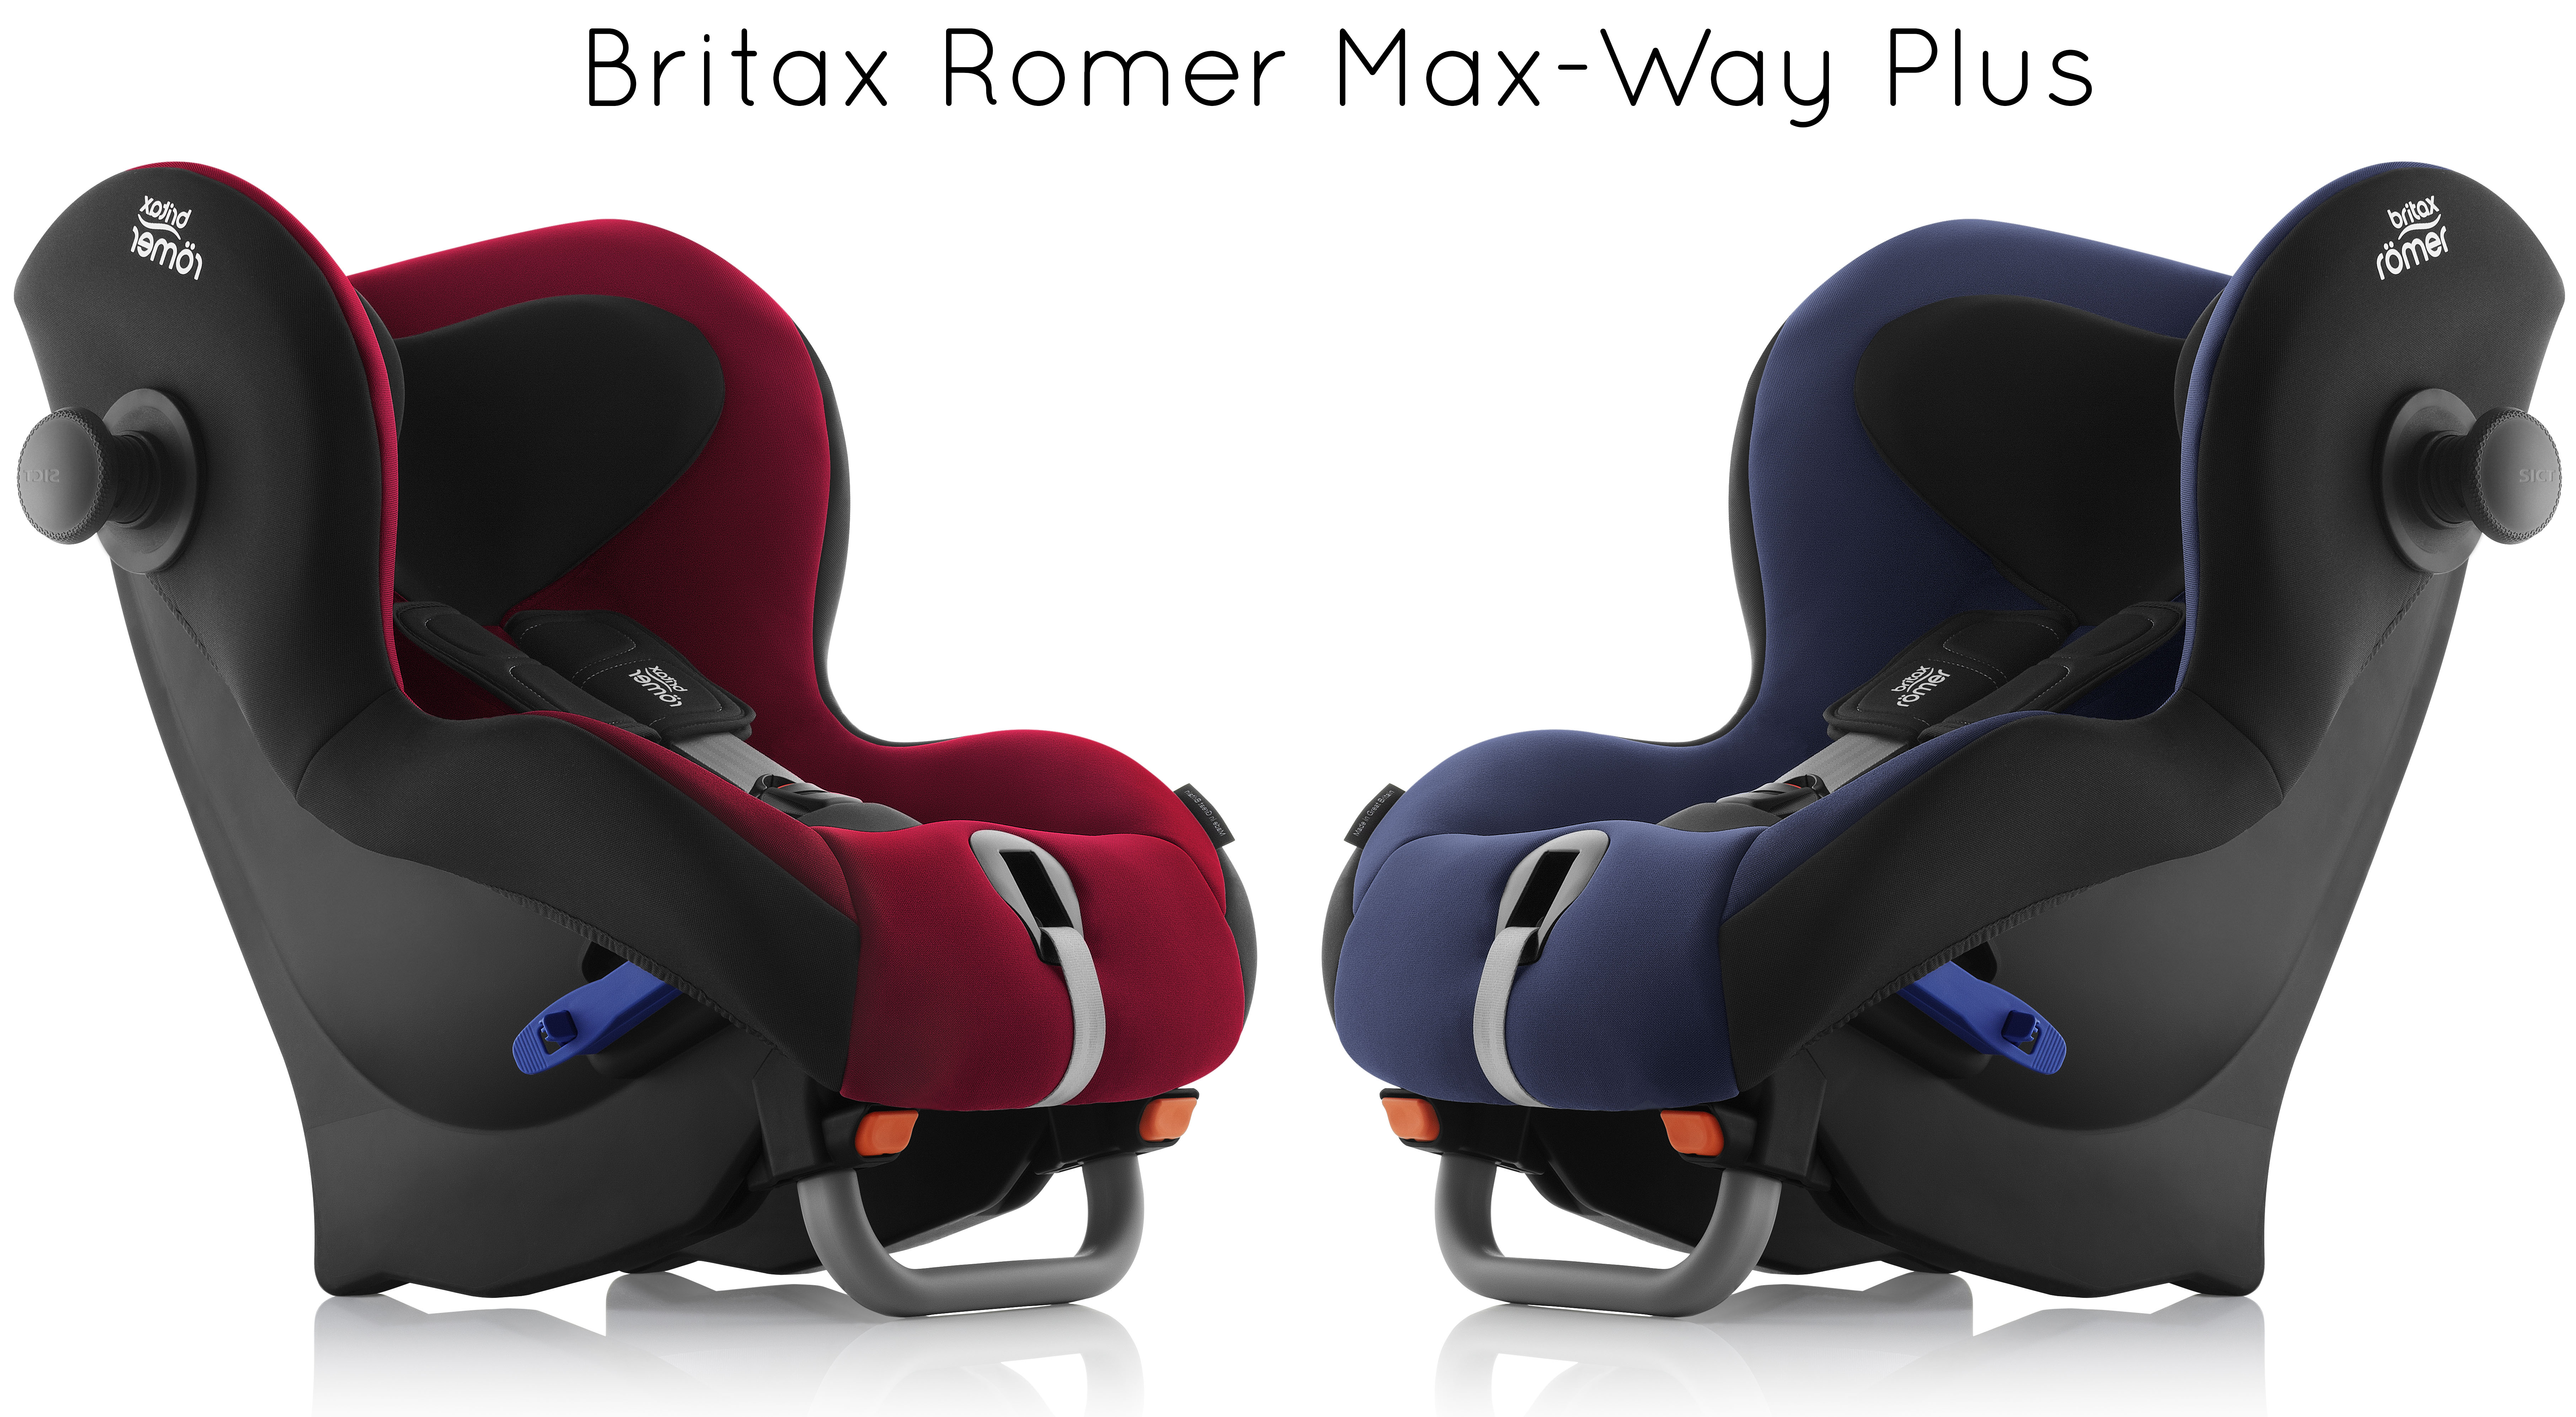 fotelik romer britax max-way plus